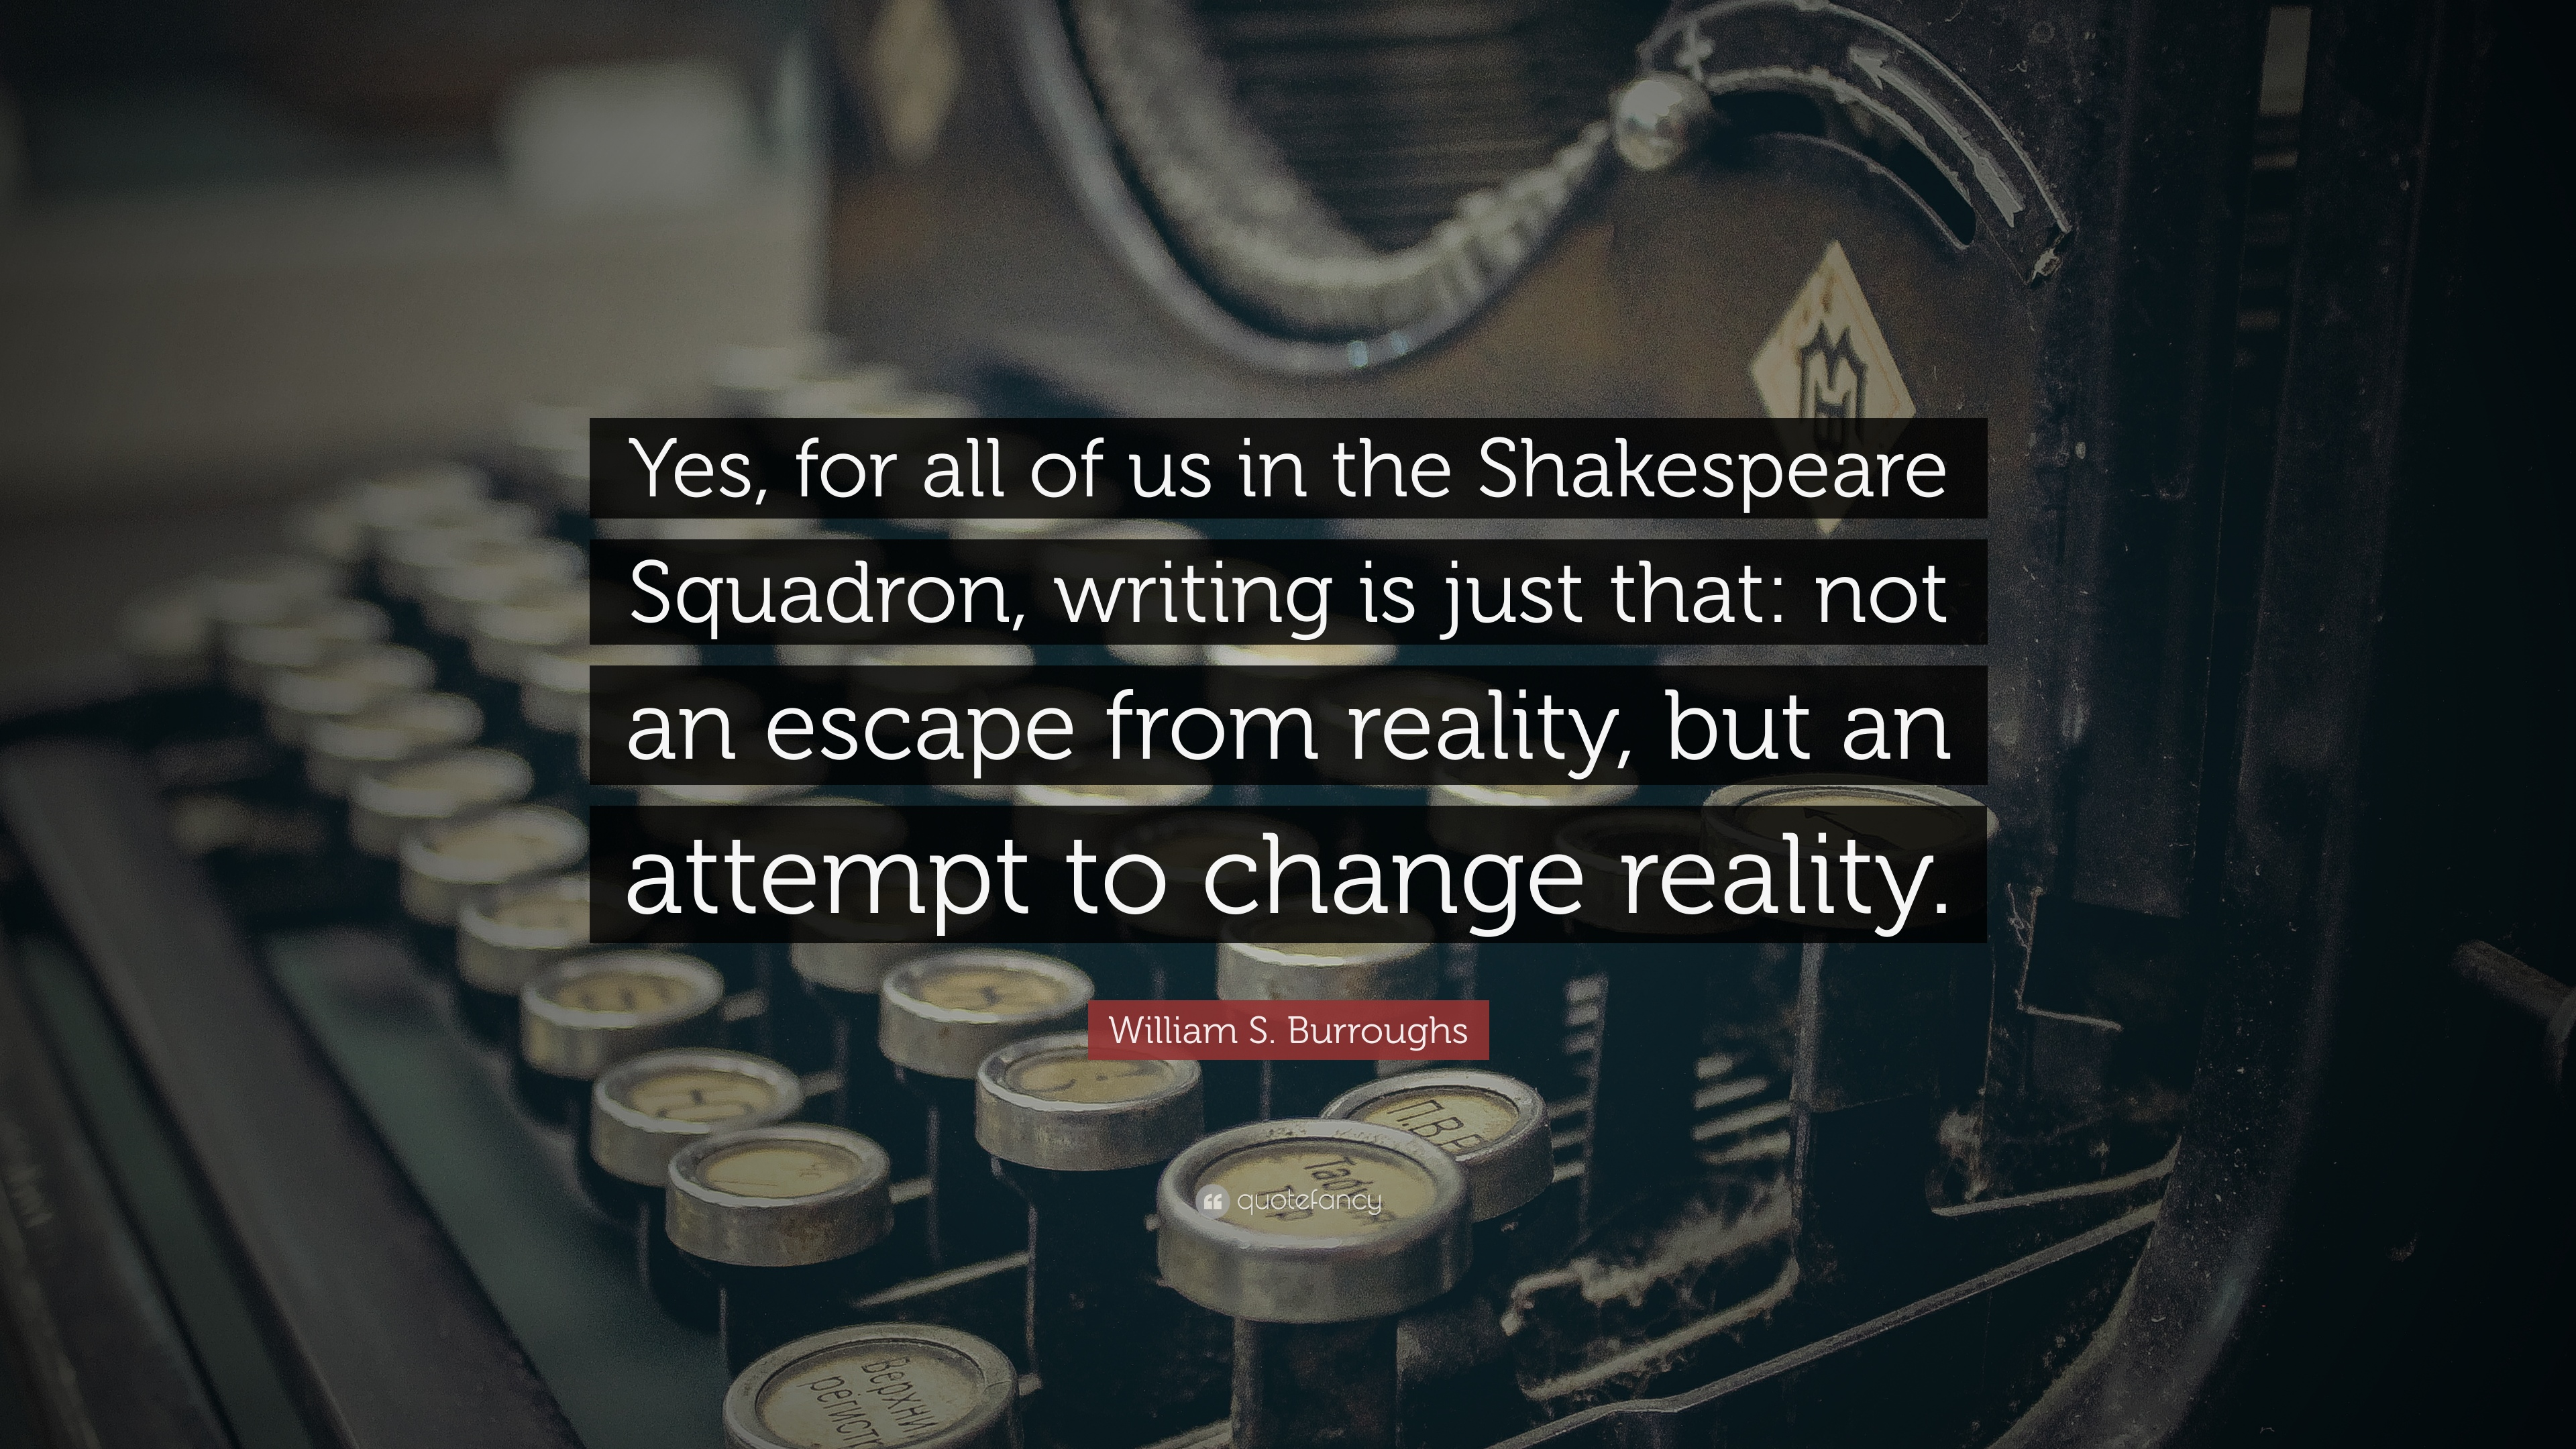 William S Burroughs Quote Yes For All Of Us In The Shakespeare